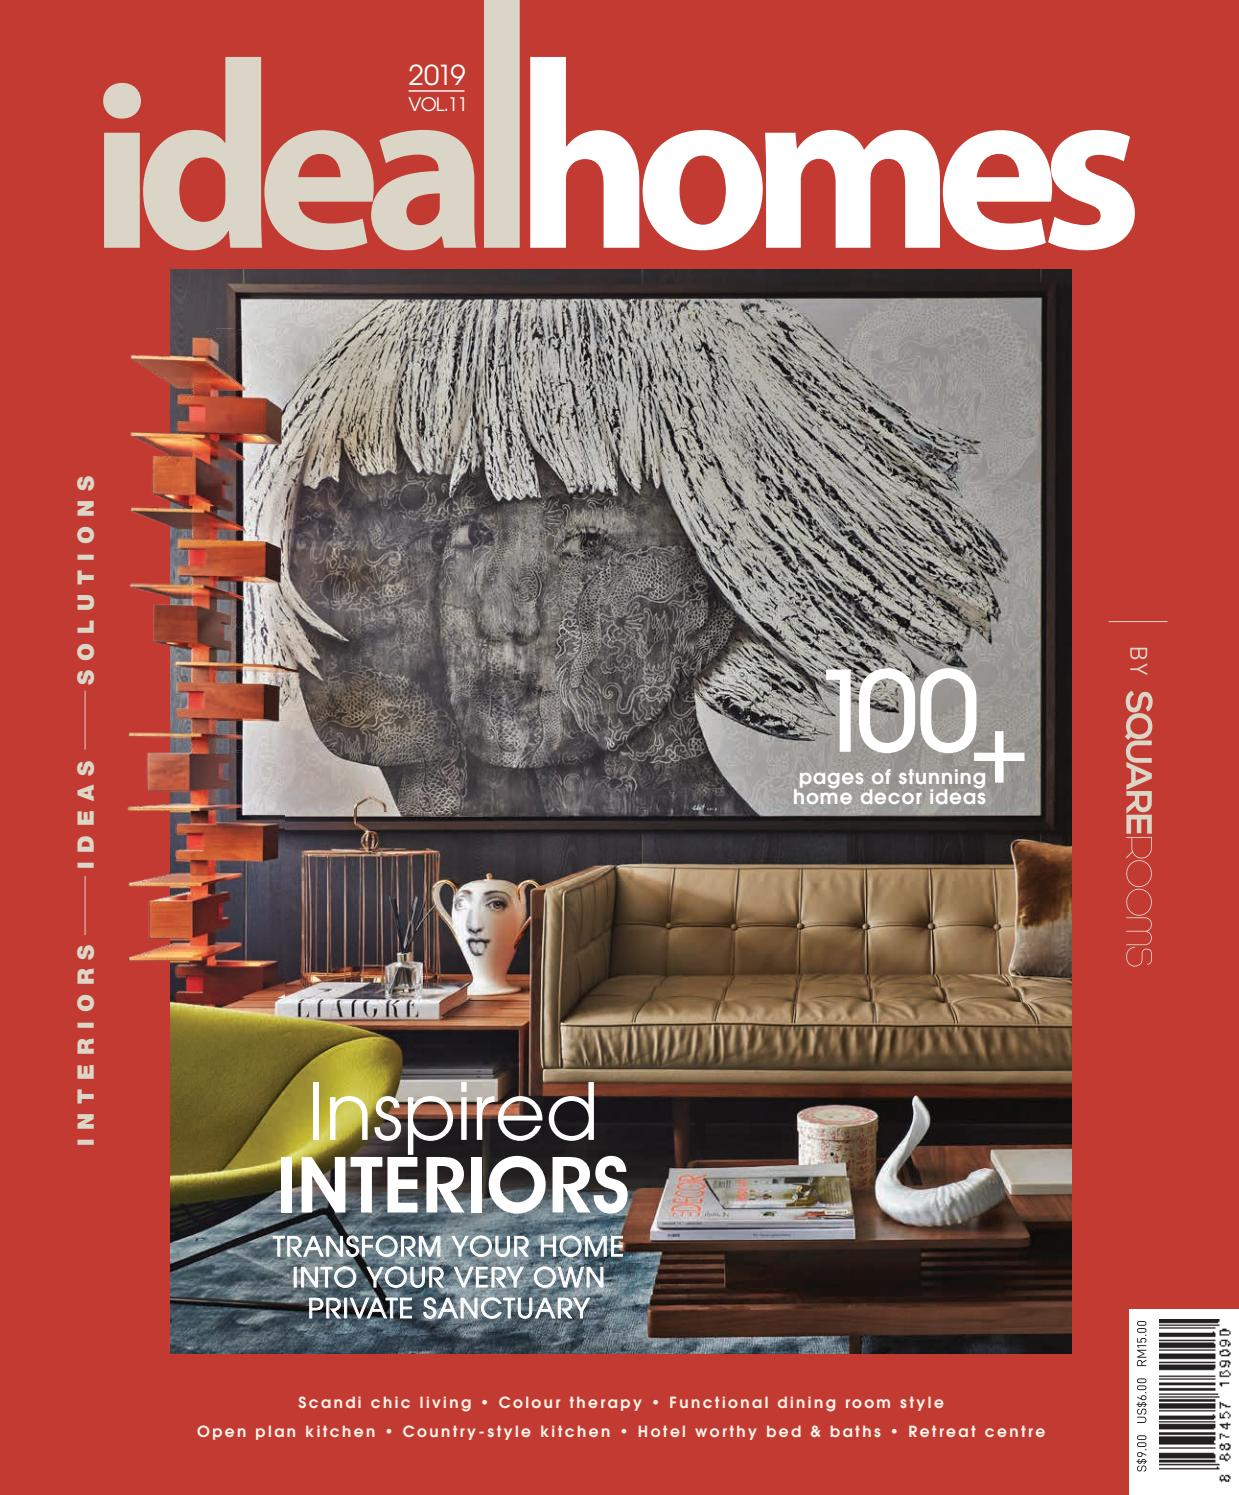 IdealHomes 2019